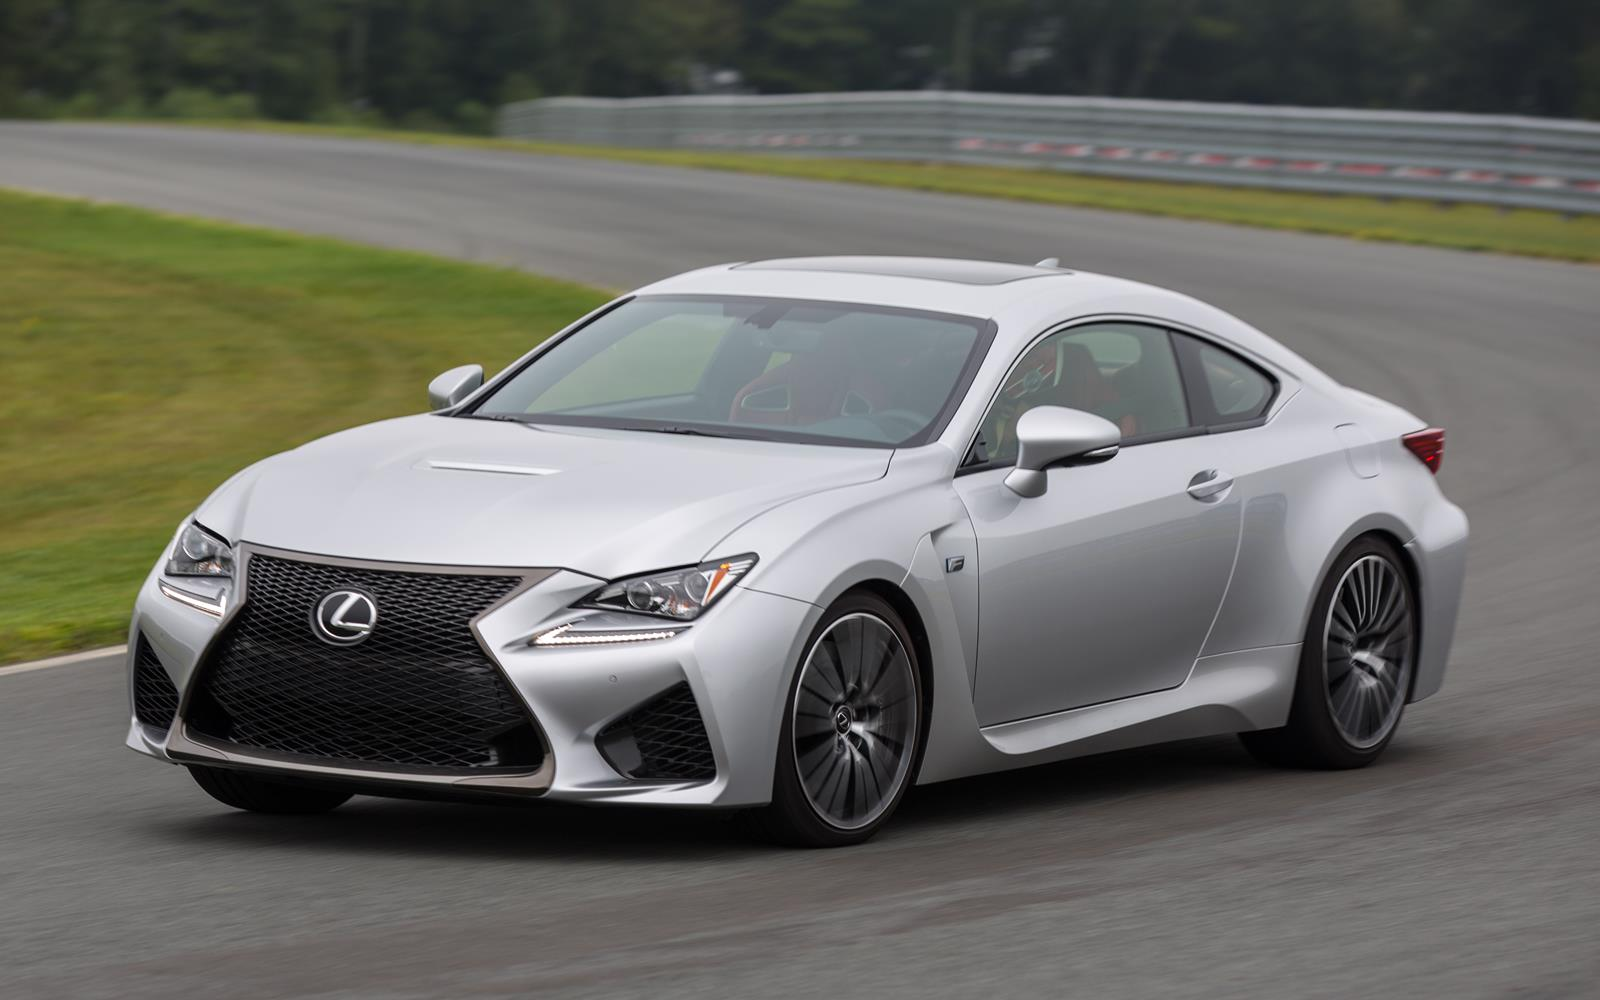 Coming Soon 2015 Lexus RC-F